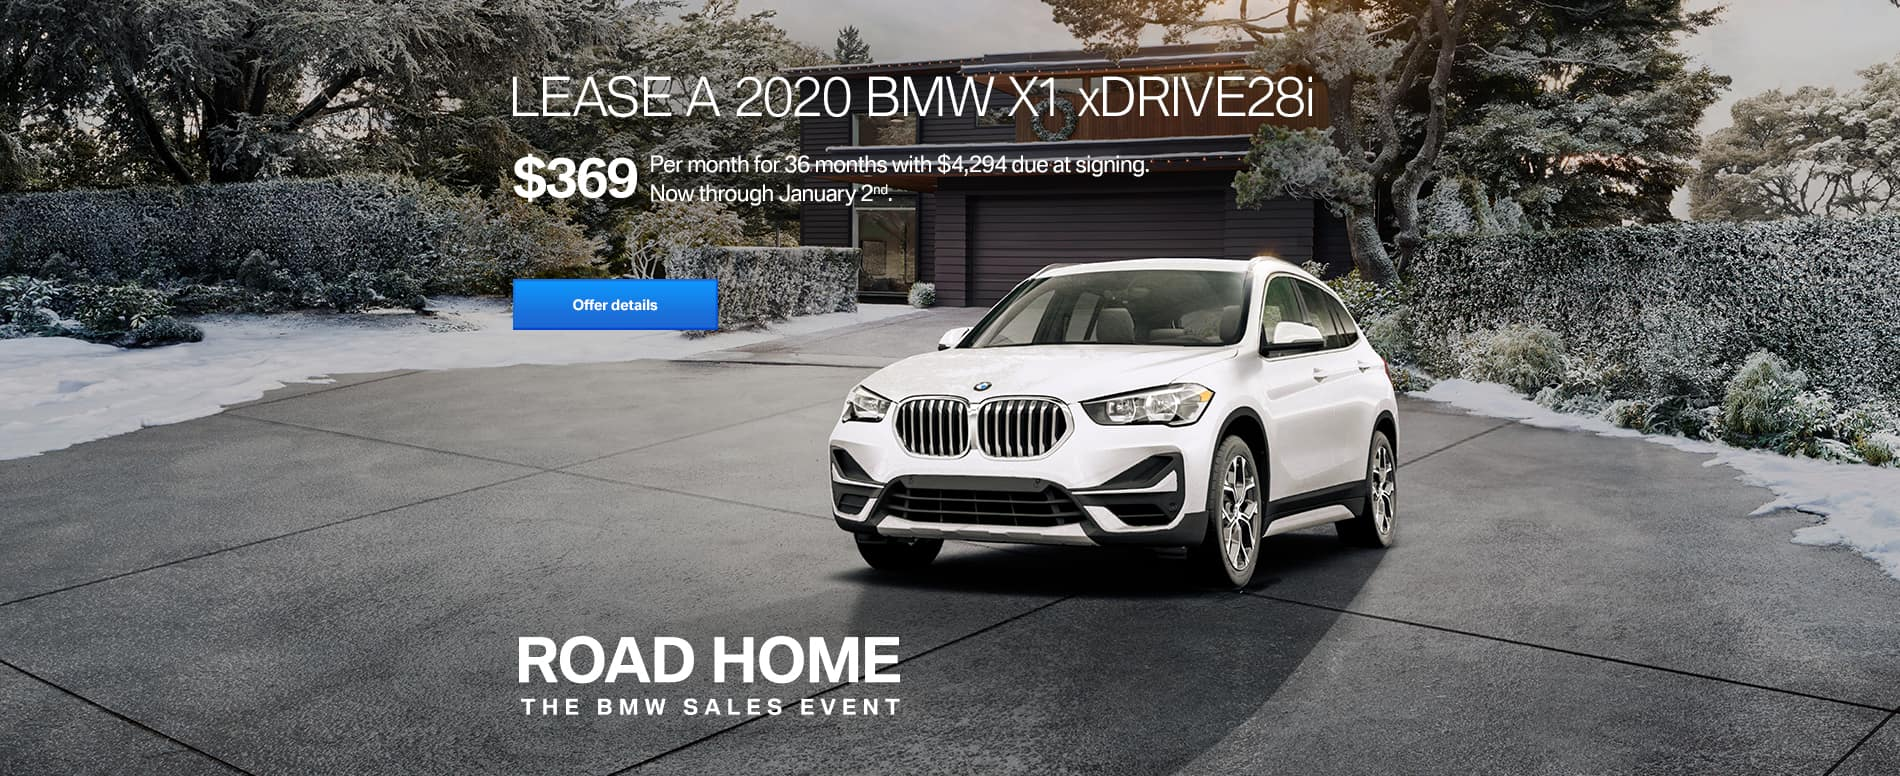 FMA3_DEC_PUSH_2020_BMW_X1_xDrive28i_369